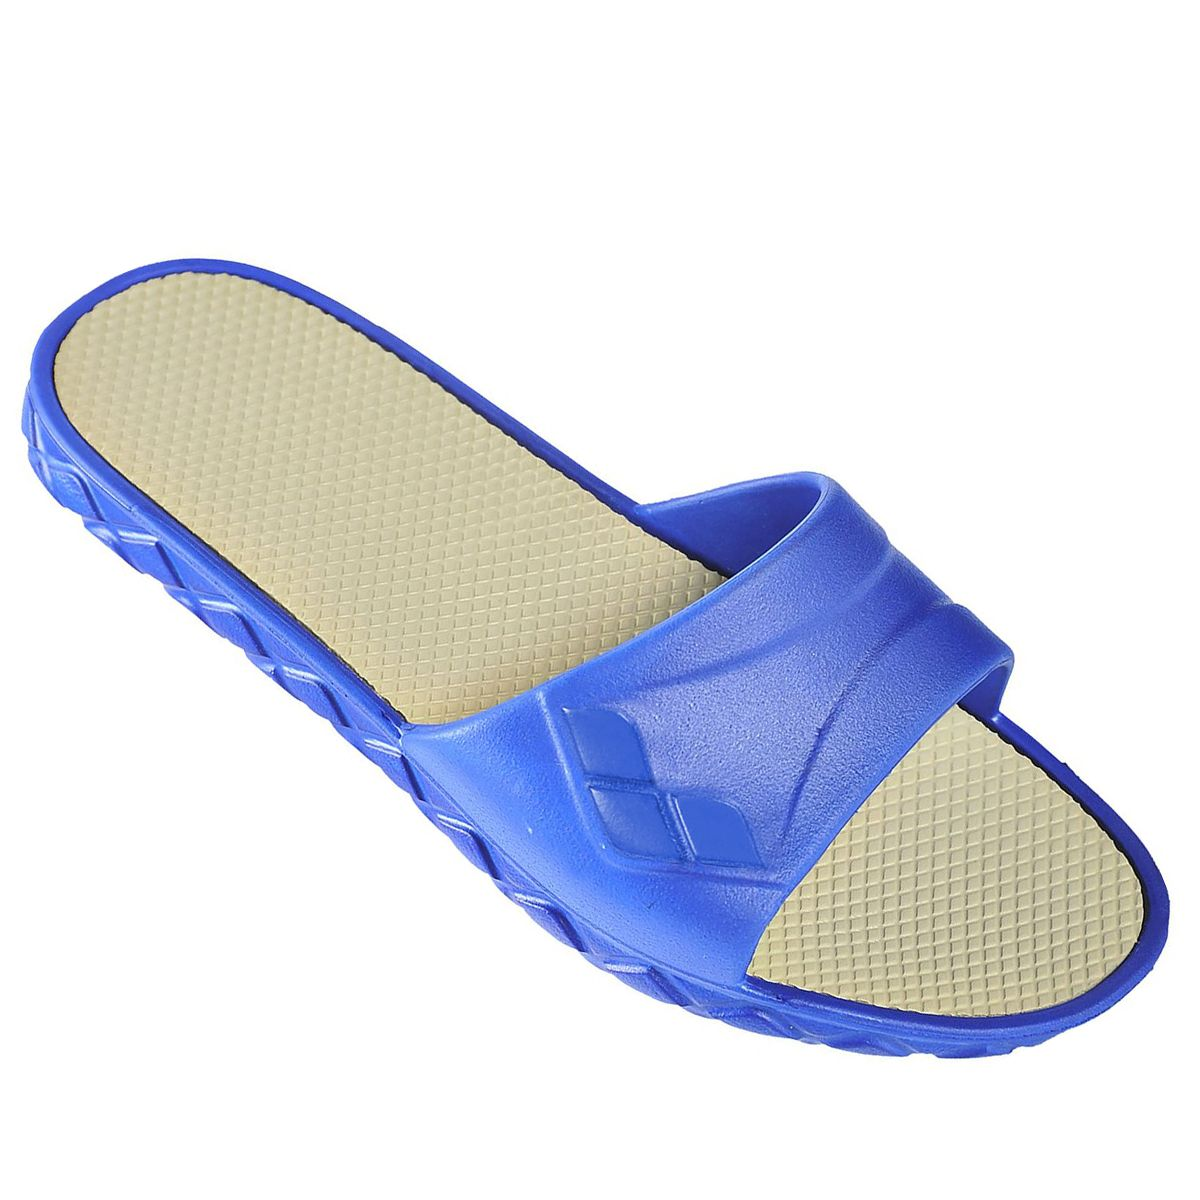 Watergrip W bathing sandals for women